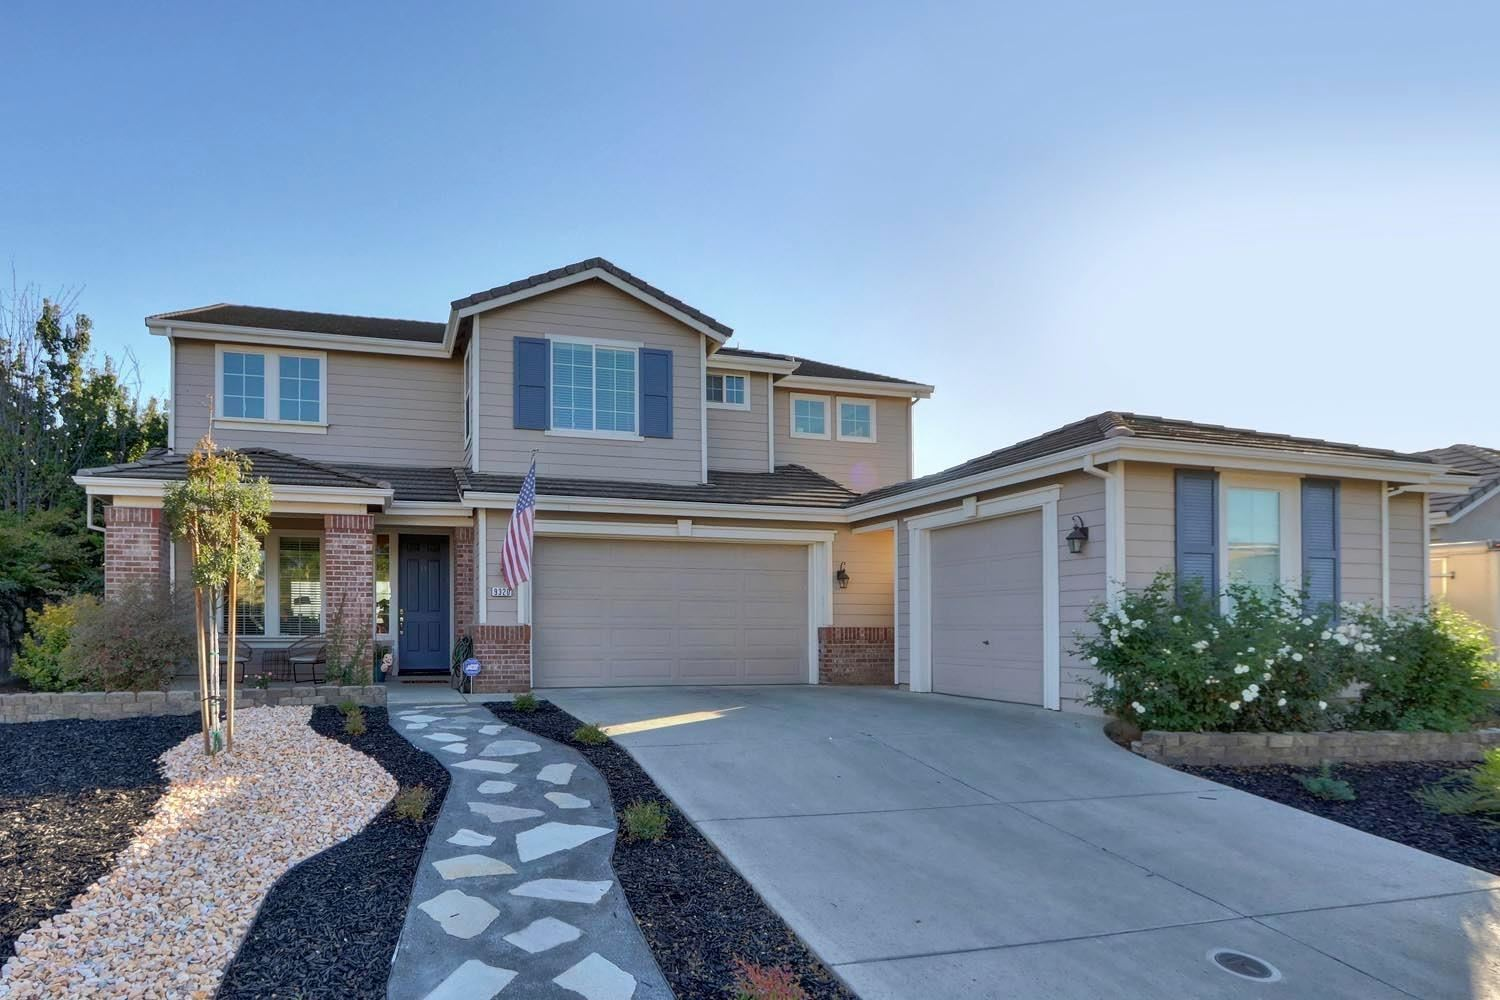 Photo of 9320 Healon Way, Elk Grove, CA 95624 (MLS # 20064033)